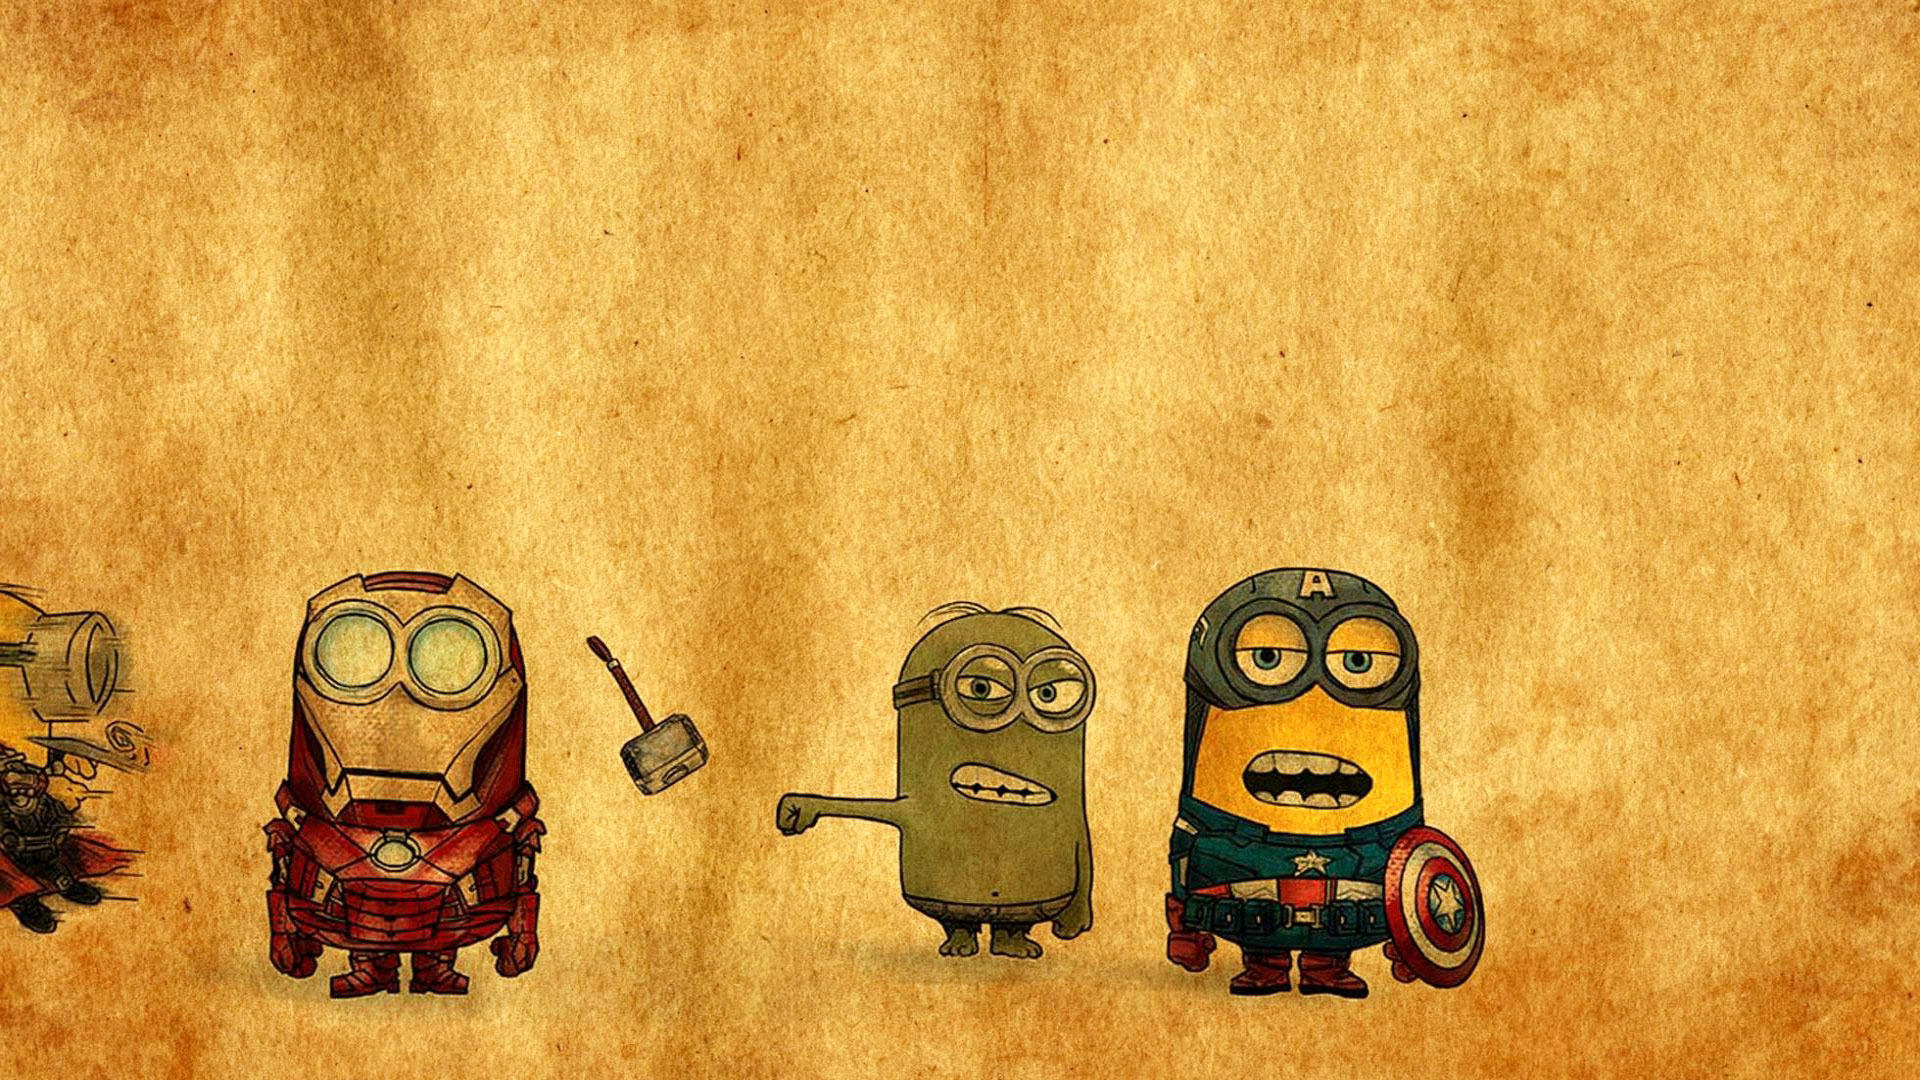 Minions-Avengers-Drawing-exclusive-HD-for-Desktop-background-Iphone-Ipad-and-and-wallpaper-wpc5807234